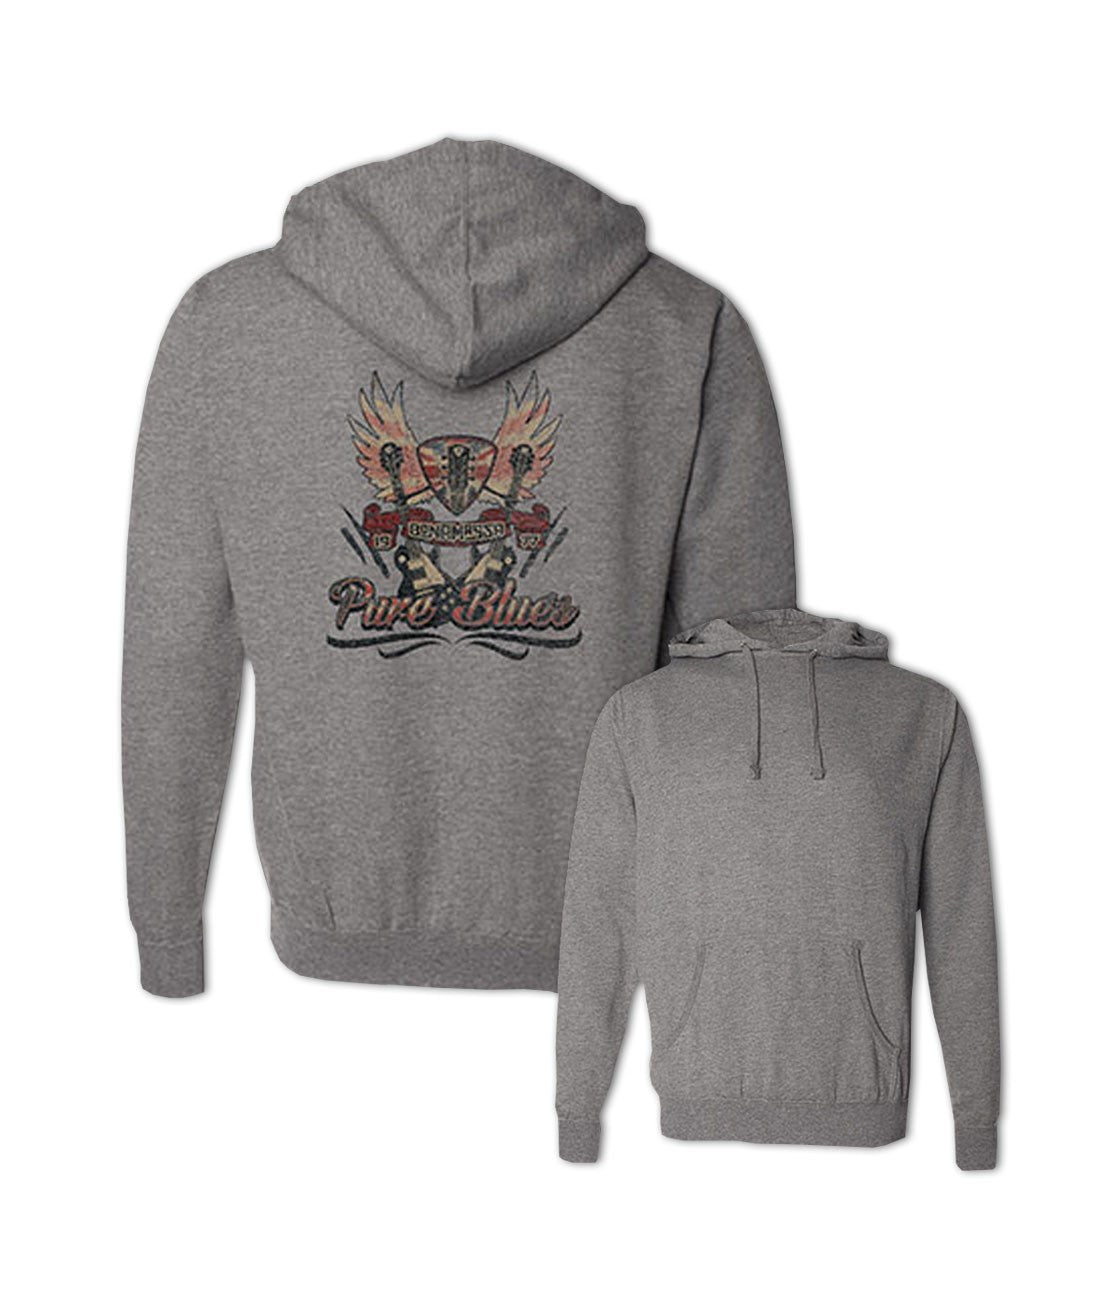 Pure Blues Pullover Hoodie (Unisex) - Gunmetal Heather